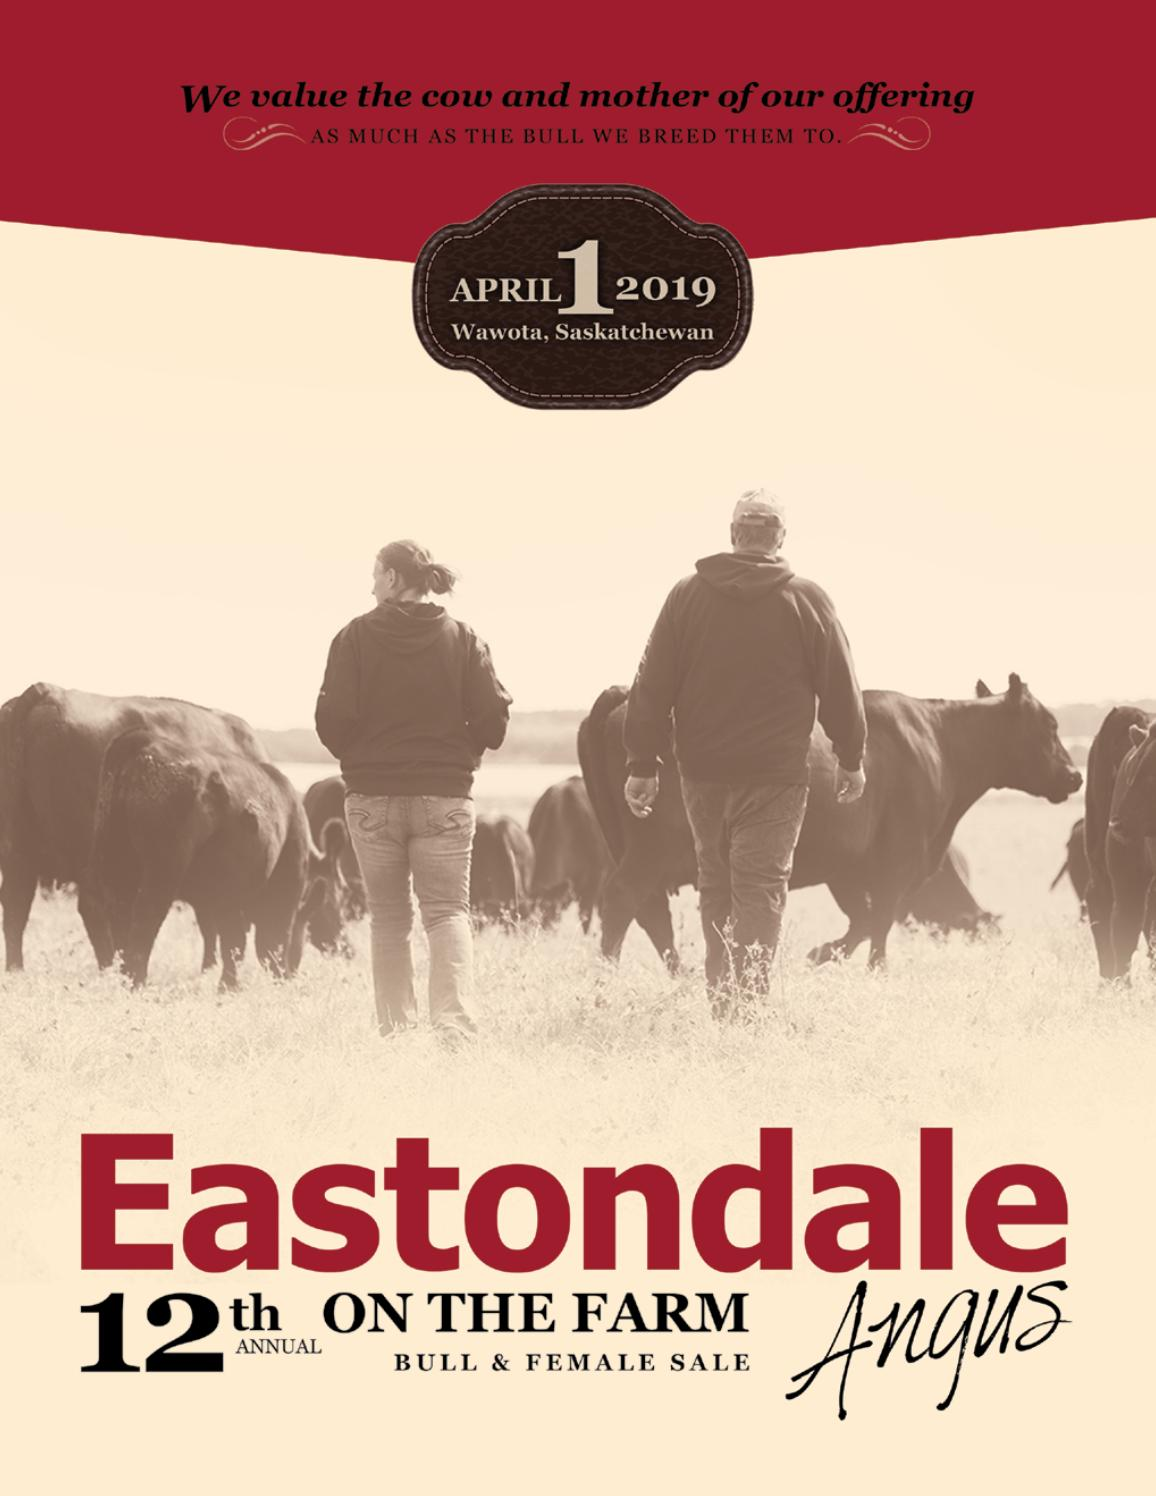 Eastondale Angus 12th Annual On the Farm Bull & Female Sale by